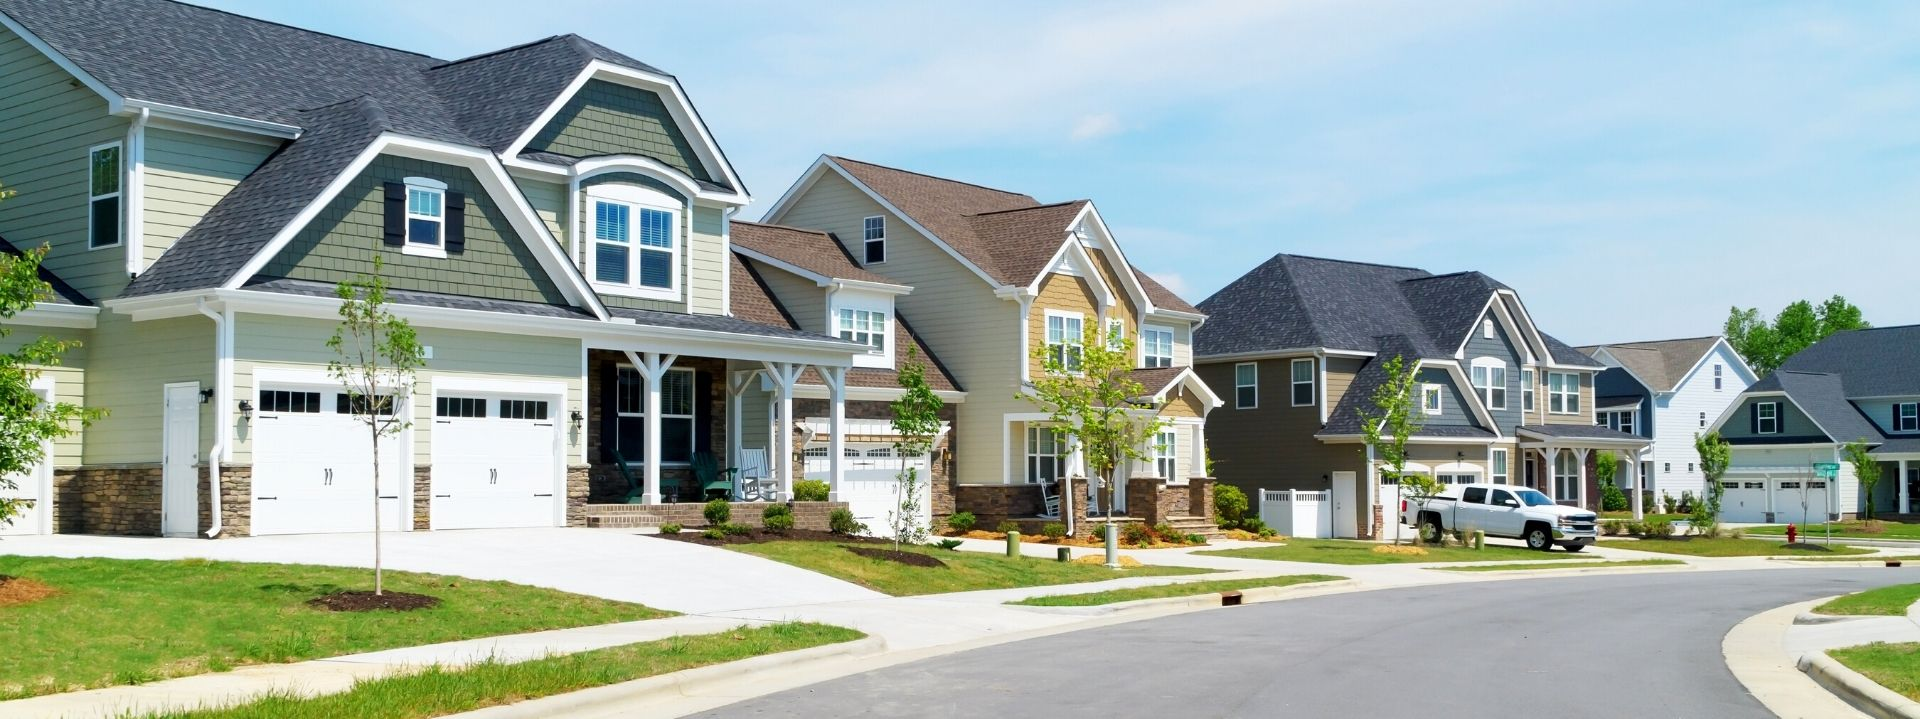 home insurance resources